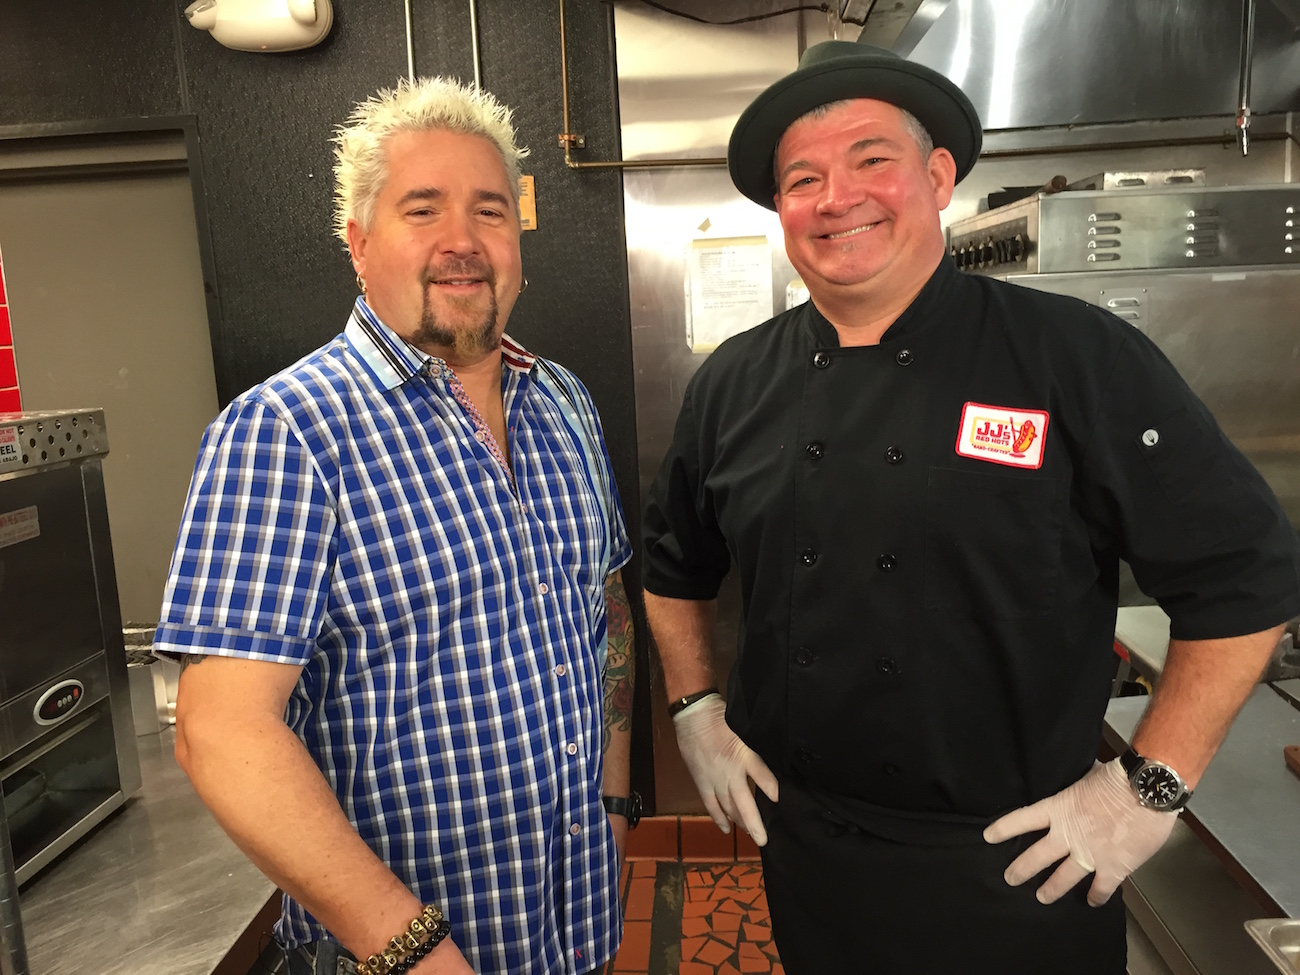 http://www.charlottefive.com/guy-fieri-diners-drive-ins-dives-came-jjs-red-hots-week/